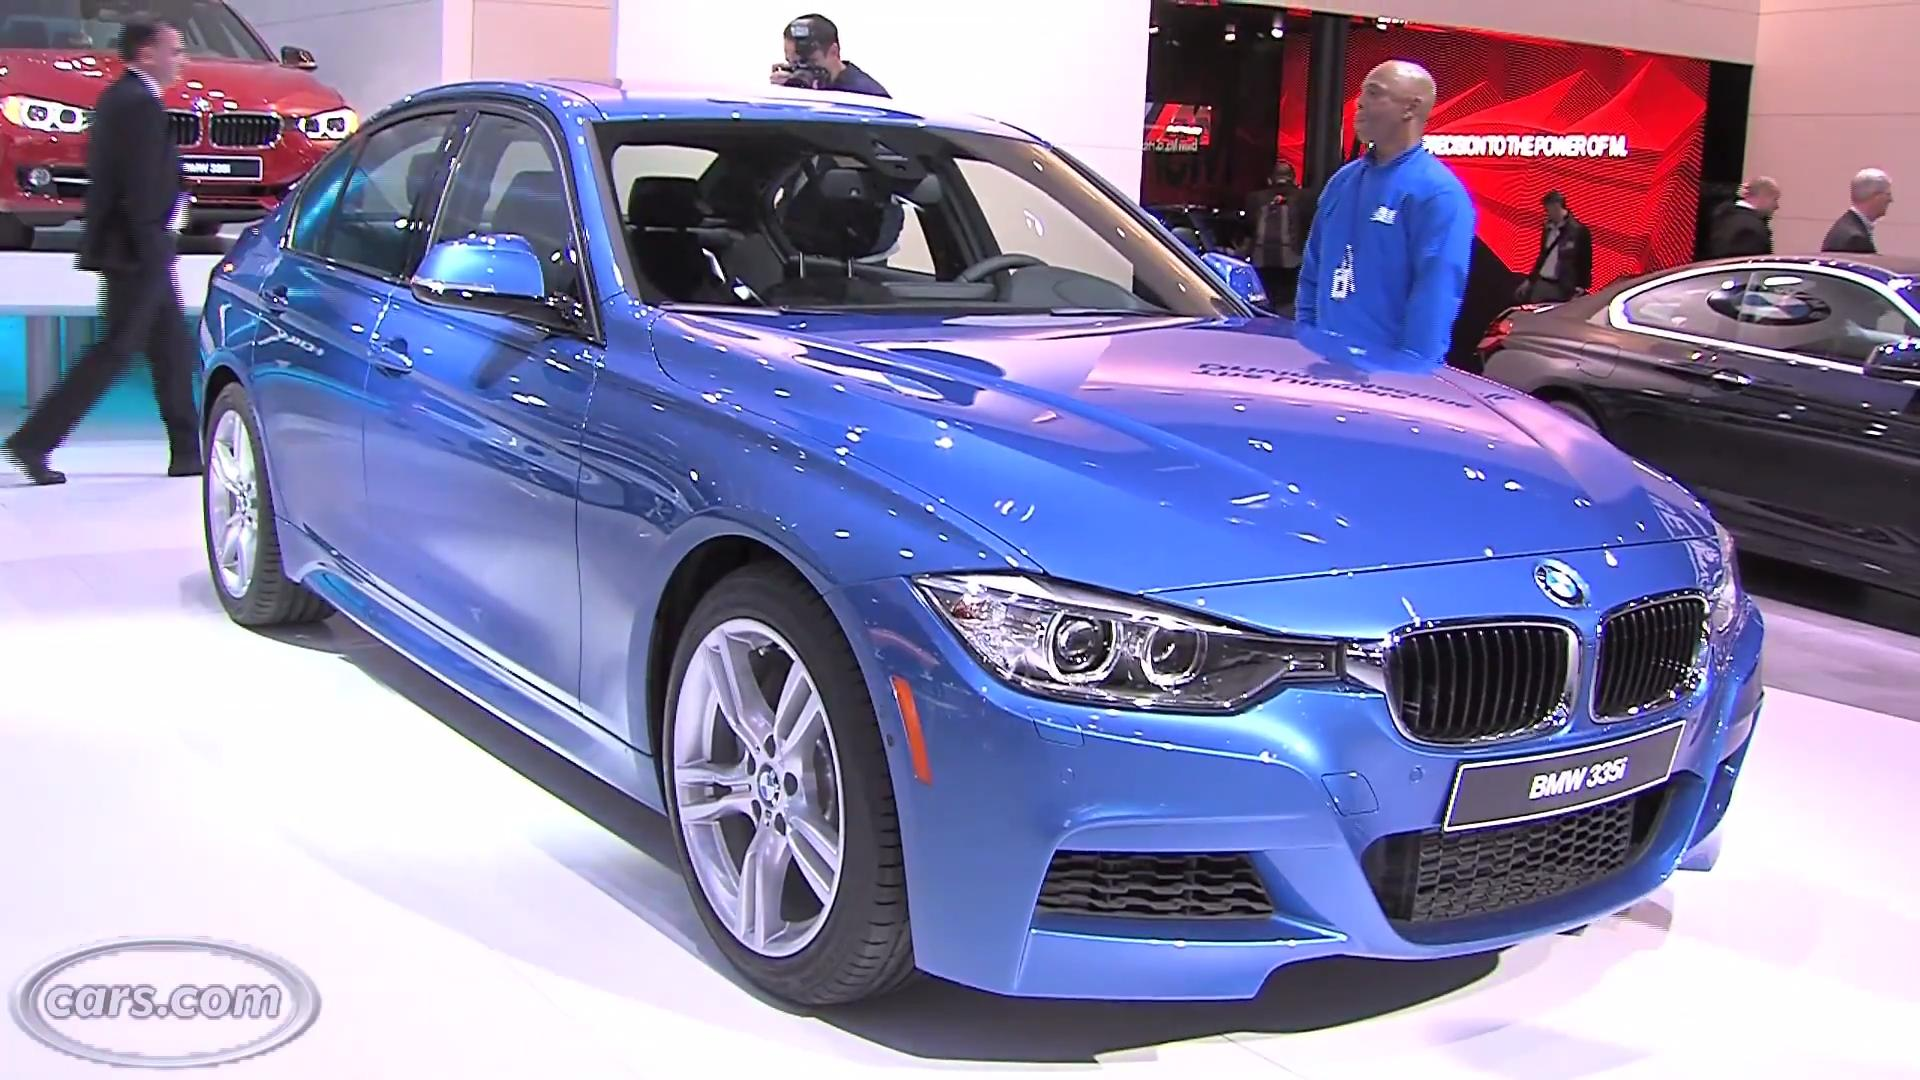 2012 BMW 335 - For every turn, there's cars com